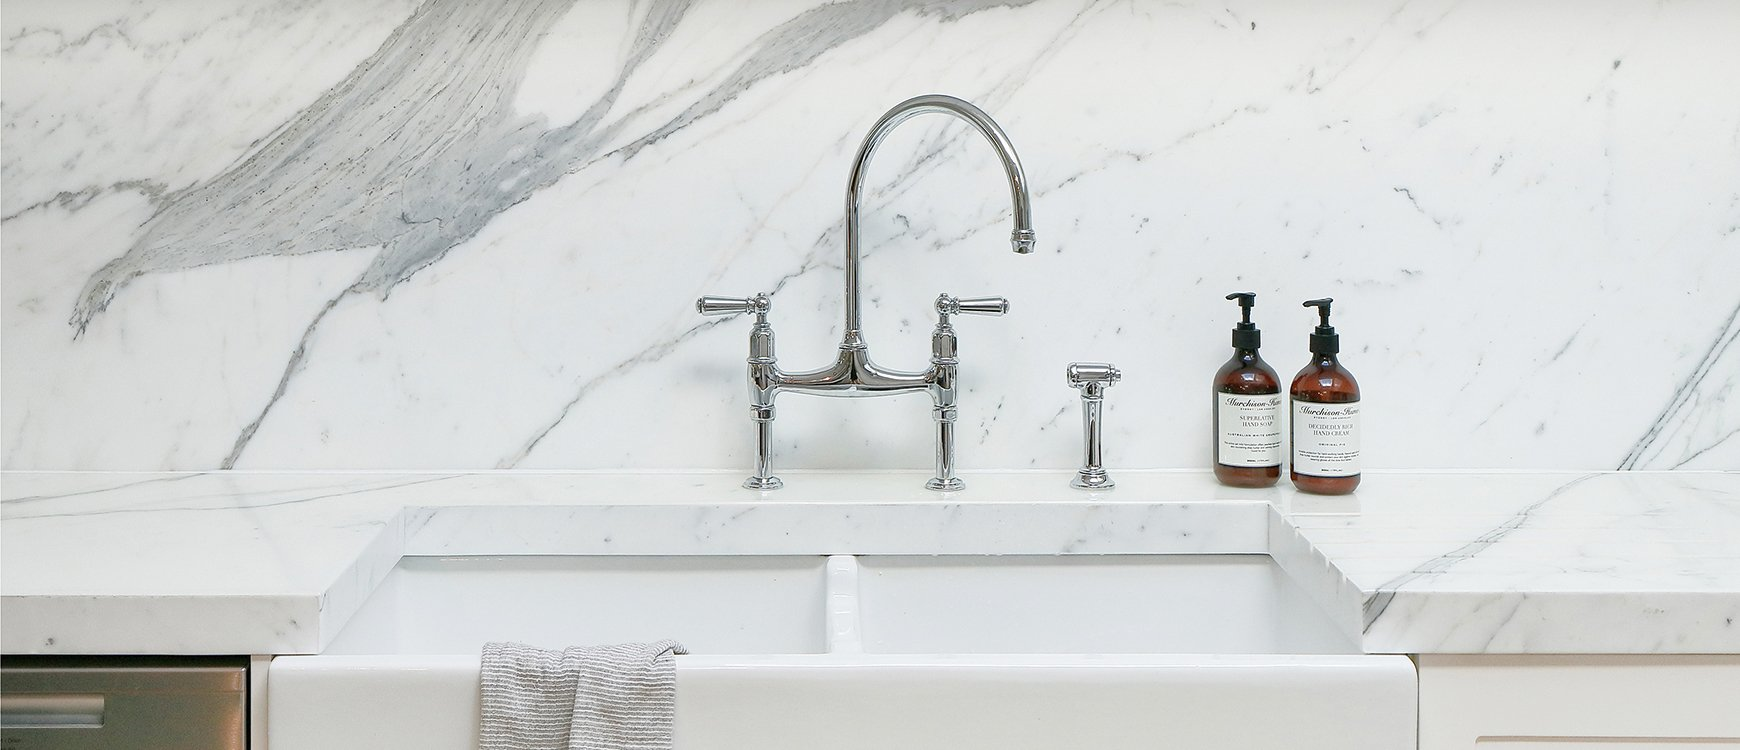 Kitchen sink with matching black glass tap landing and sliding cover - Design Icon Perrin Rowe Ionian Kitchen Tap